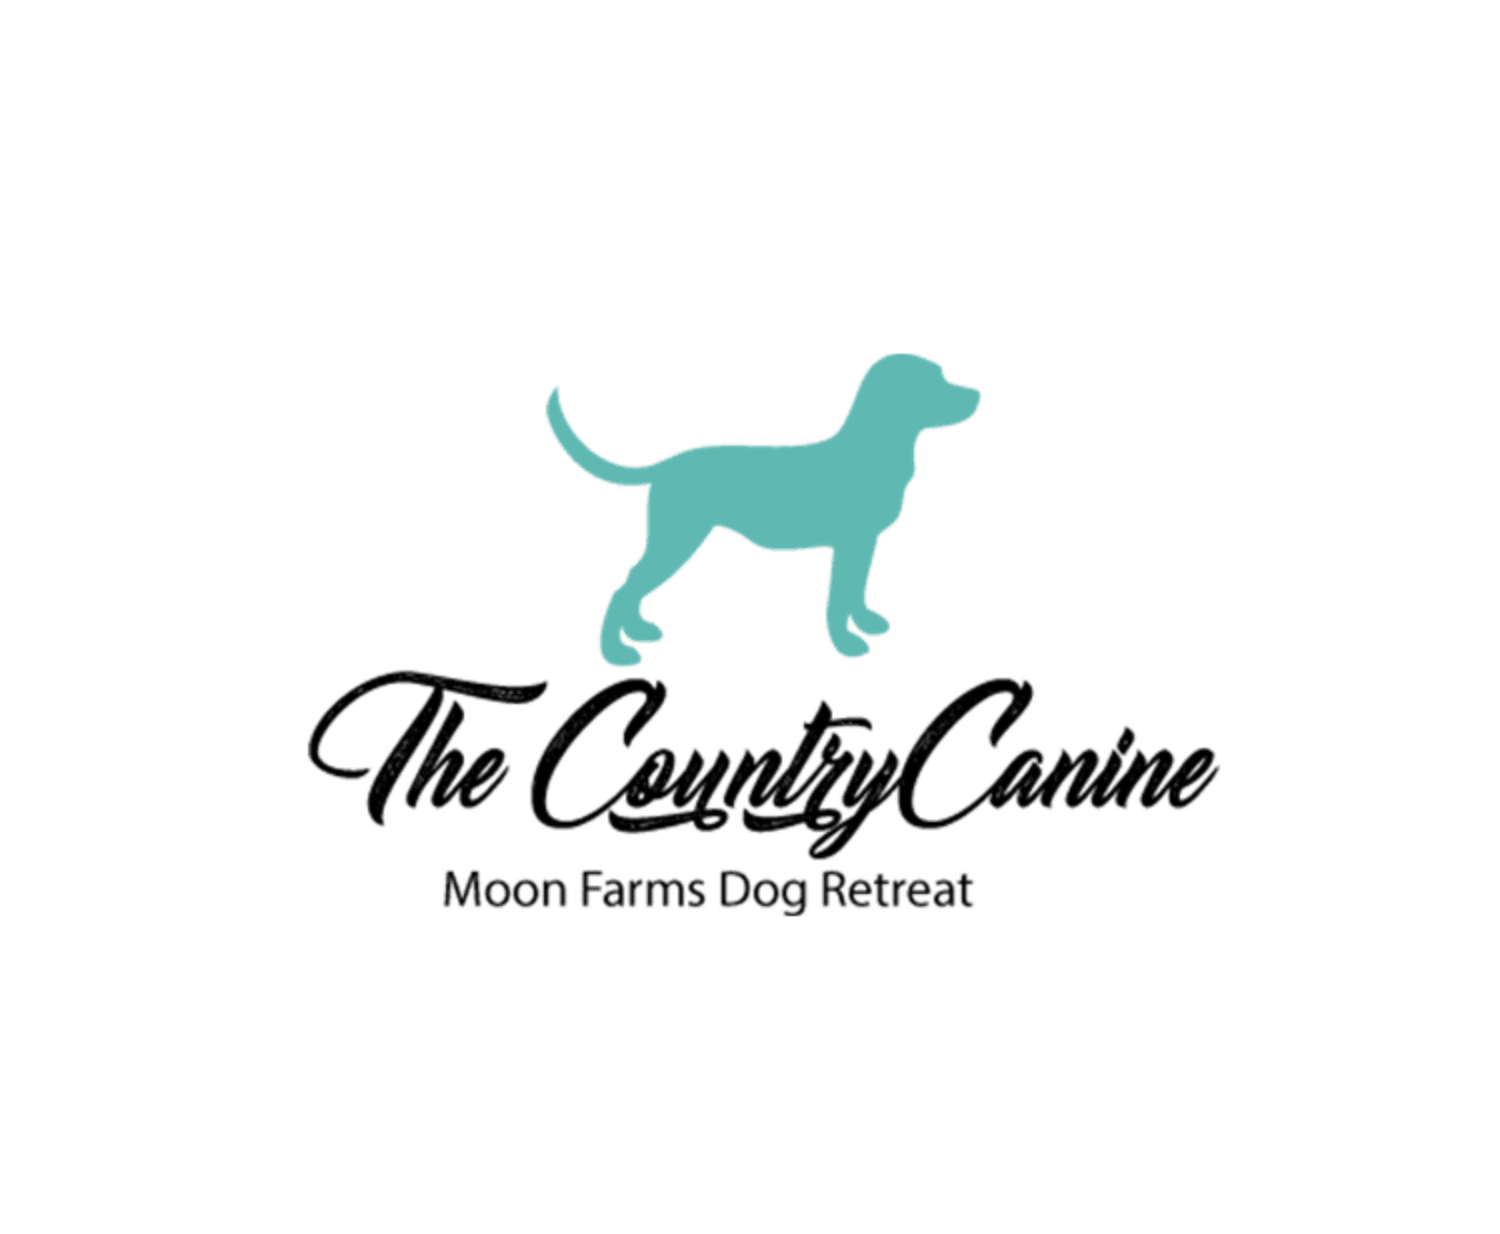 Logo by Tailored Logo - The Country Canine